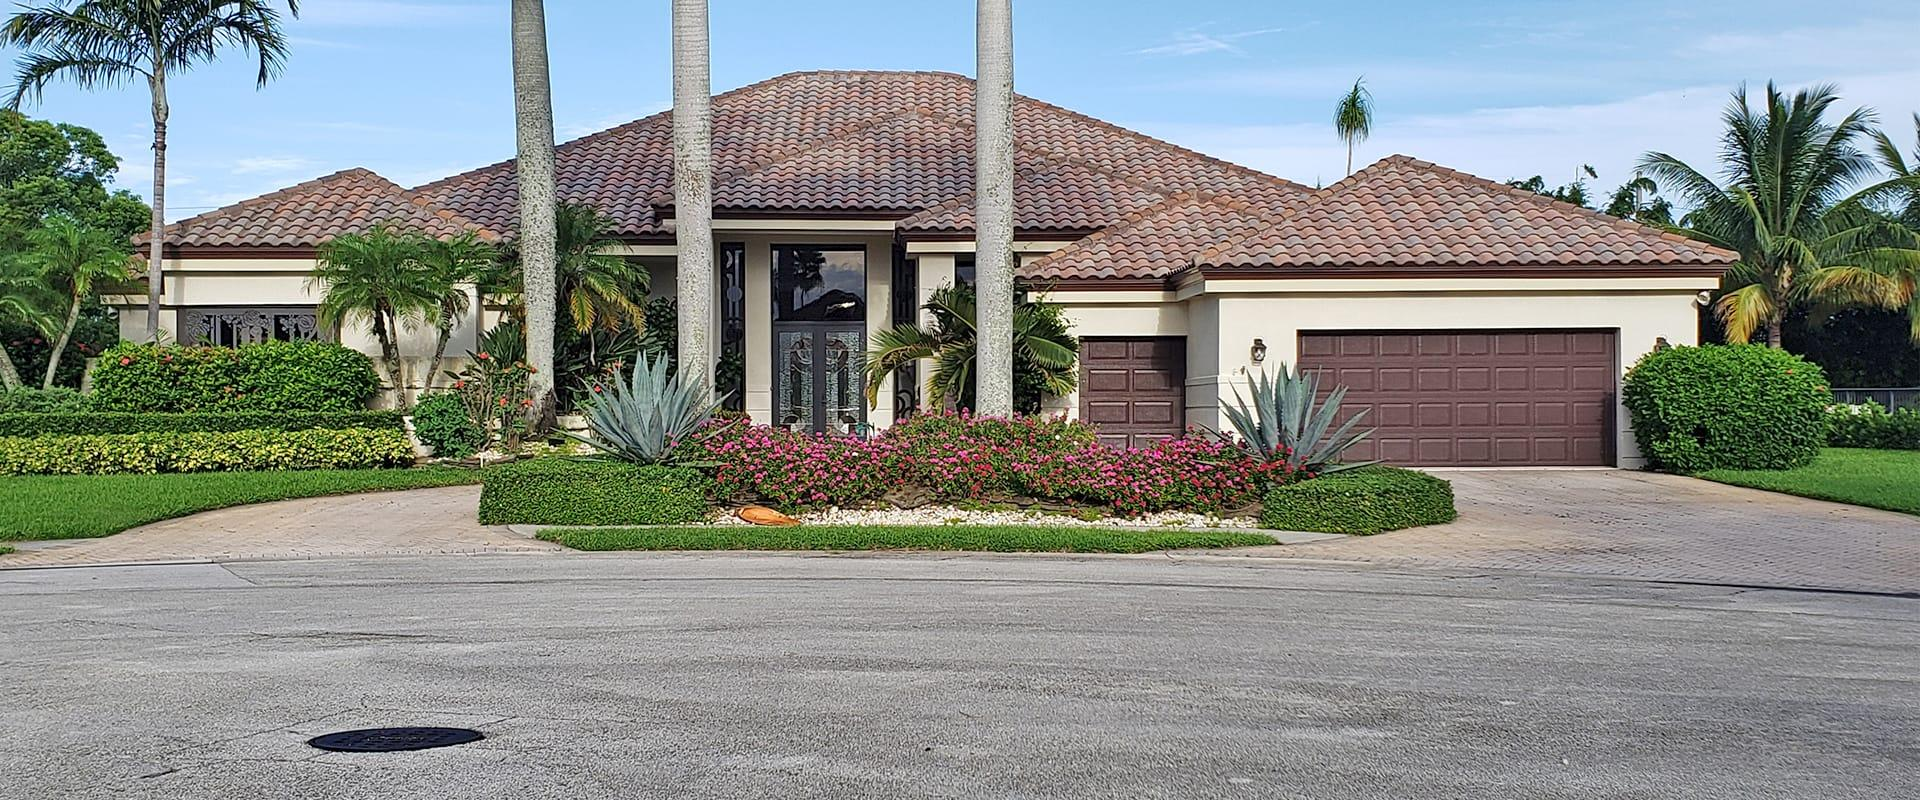 street view of a house in fort lauderdale florida